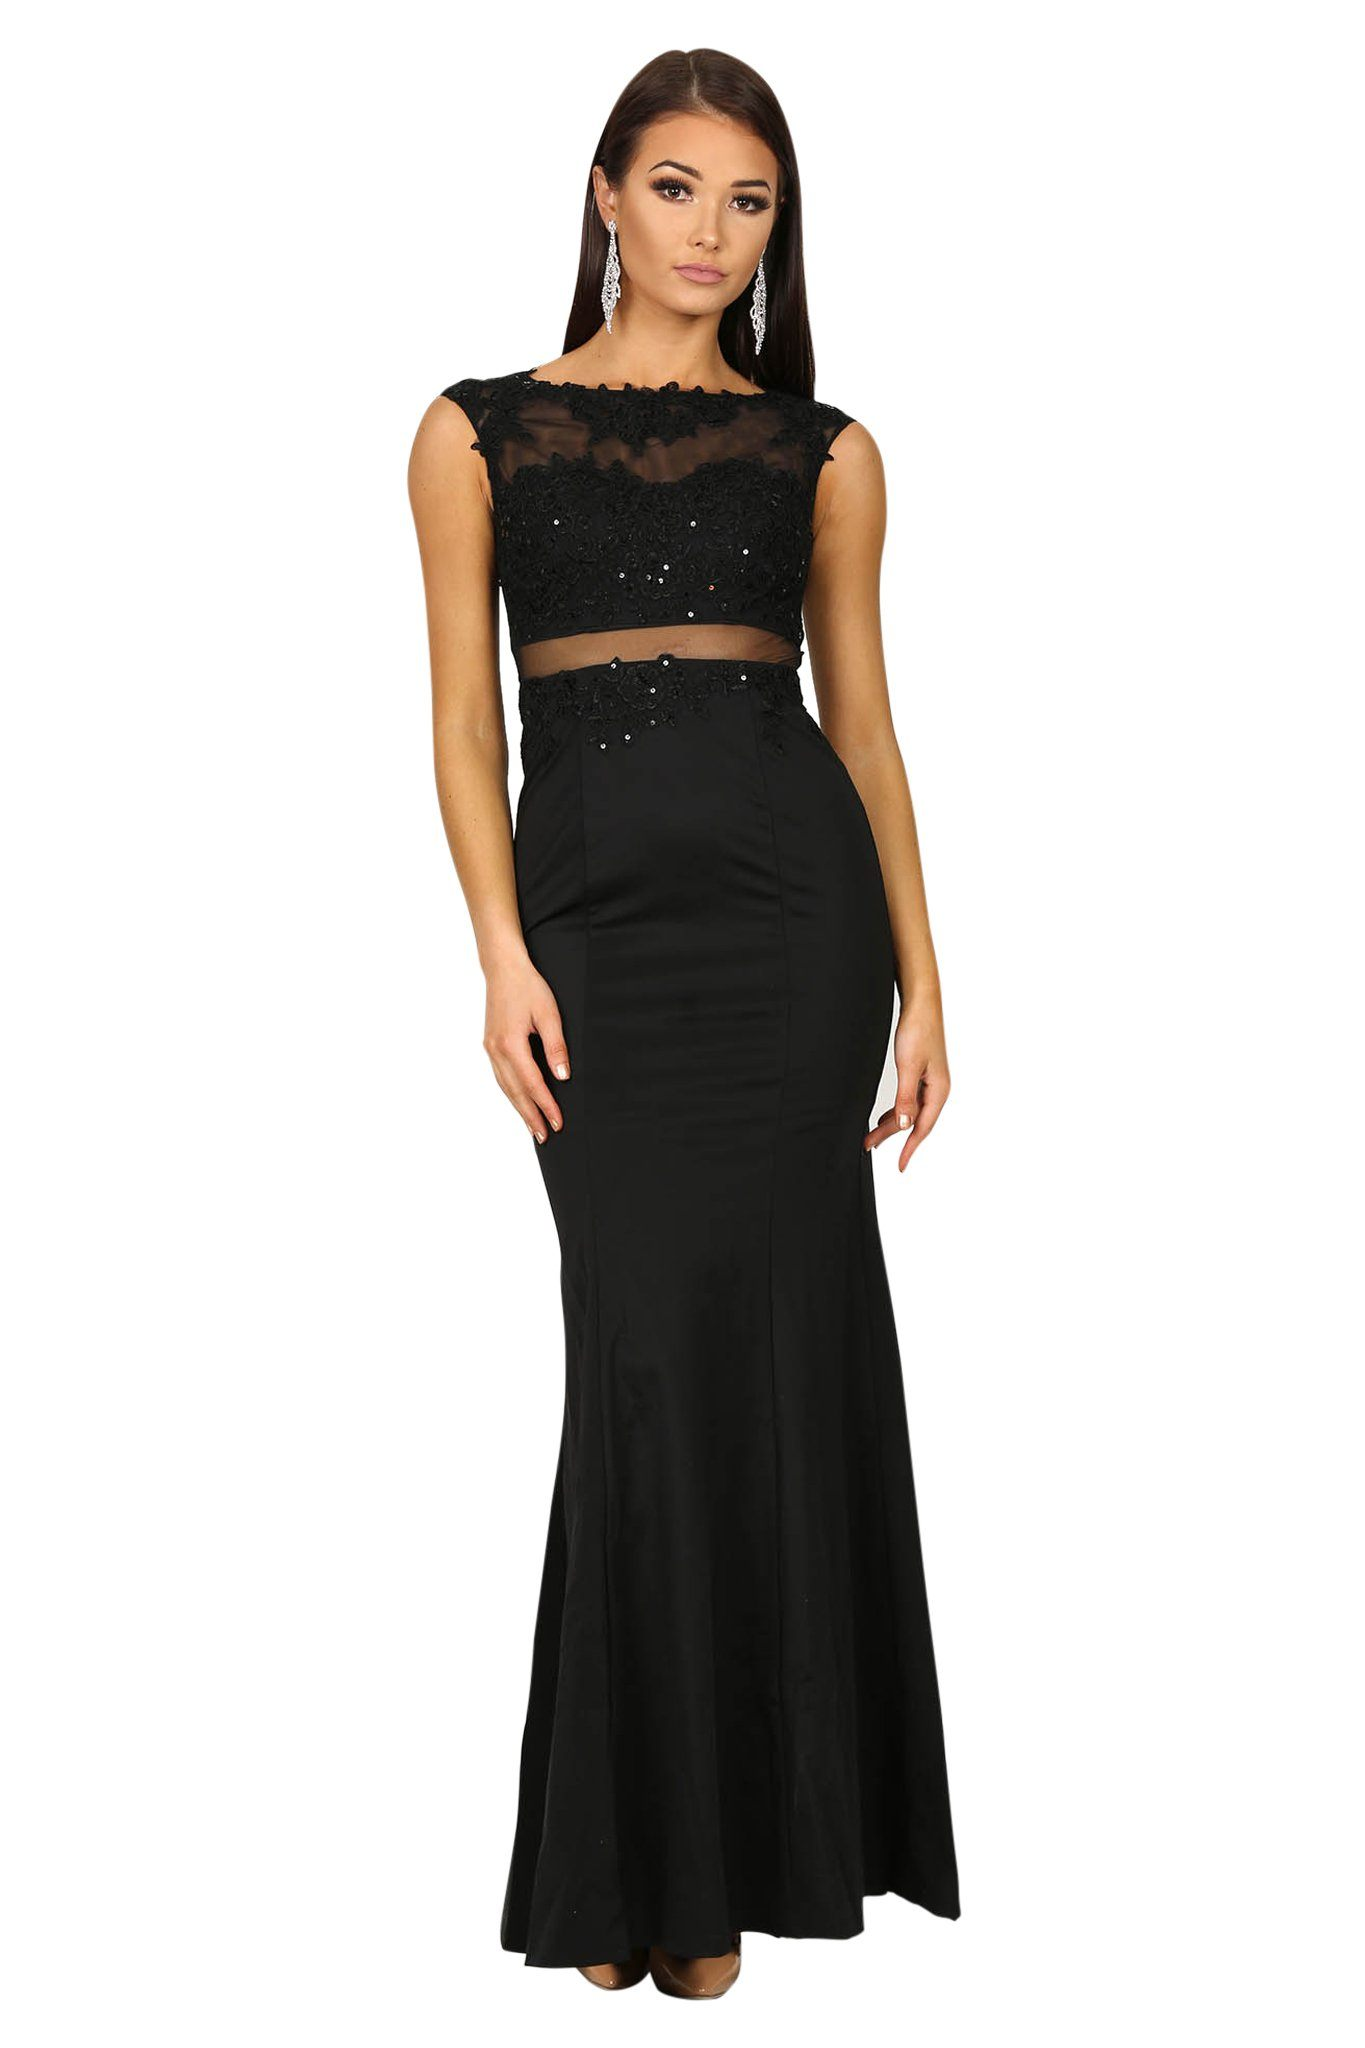 Black fitted maxi dress with lace detailing on sheer mesh and slightly flared skirt